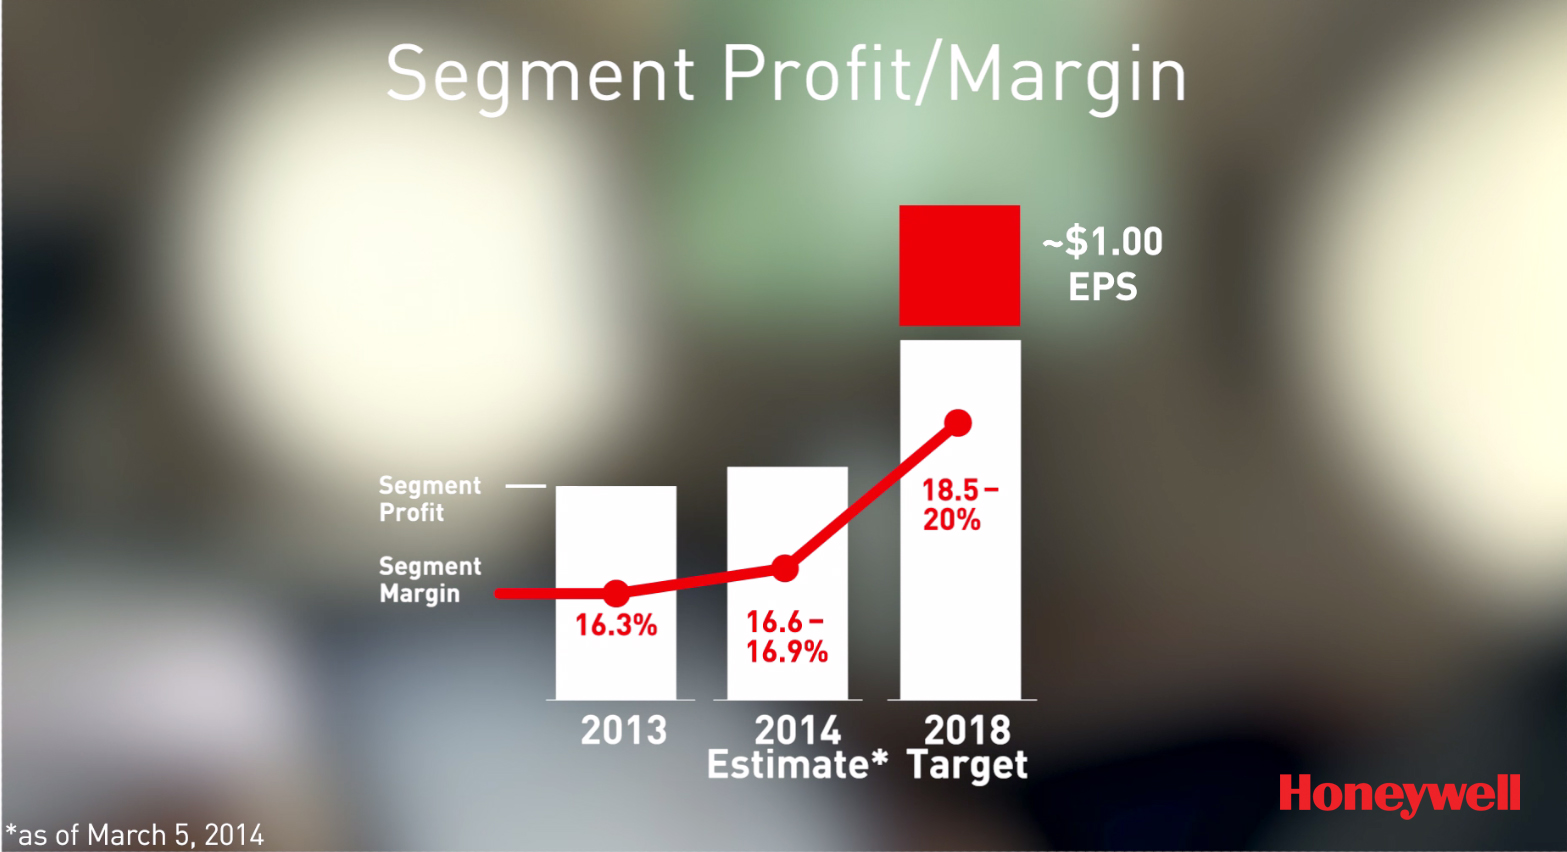 An aggressive, but achievable five-year plan will help Honeywell to generate double-digit earnings growth by 2018.